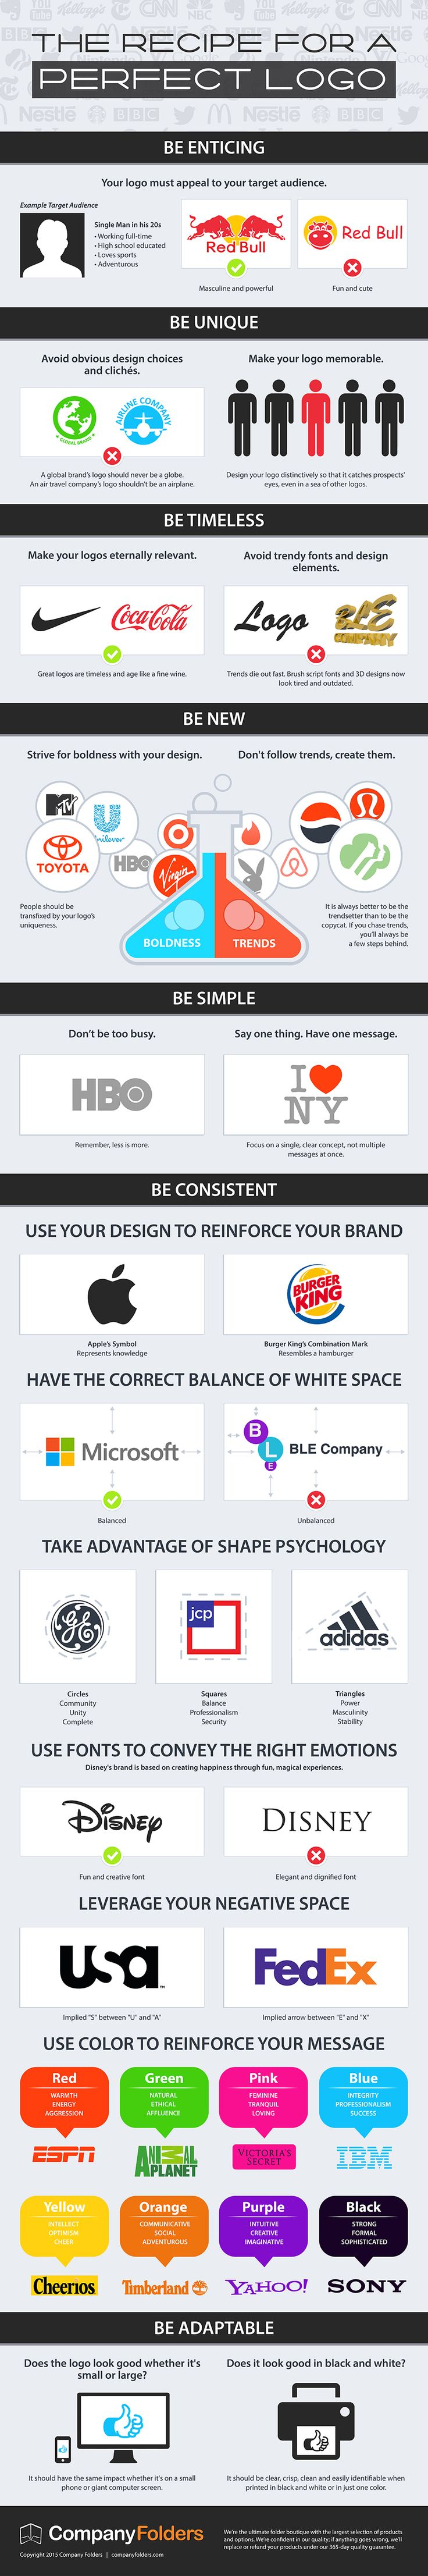 perfect-logo-design-infographic-2